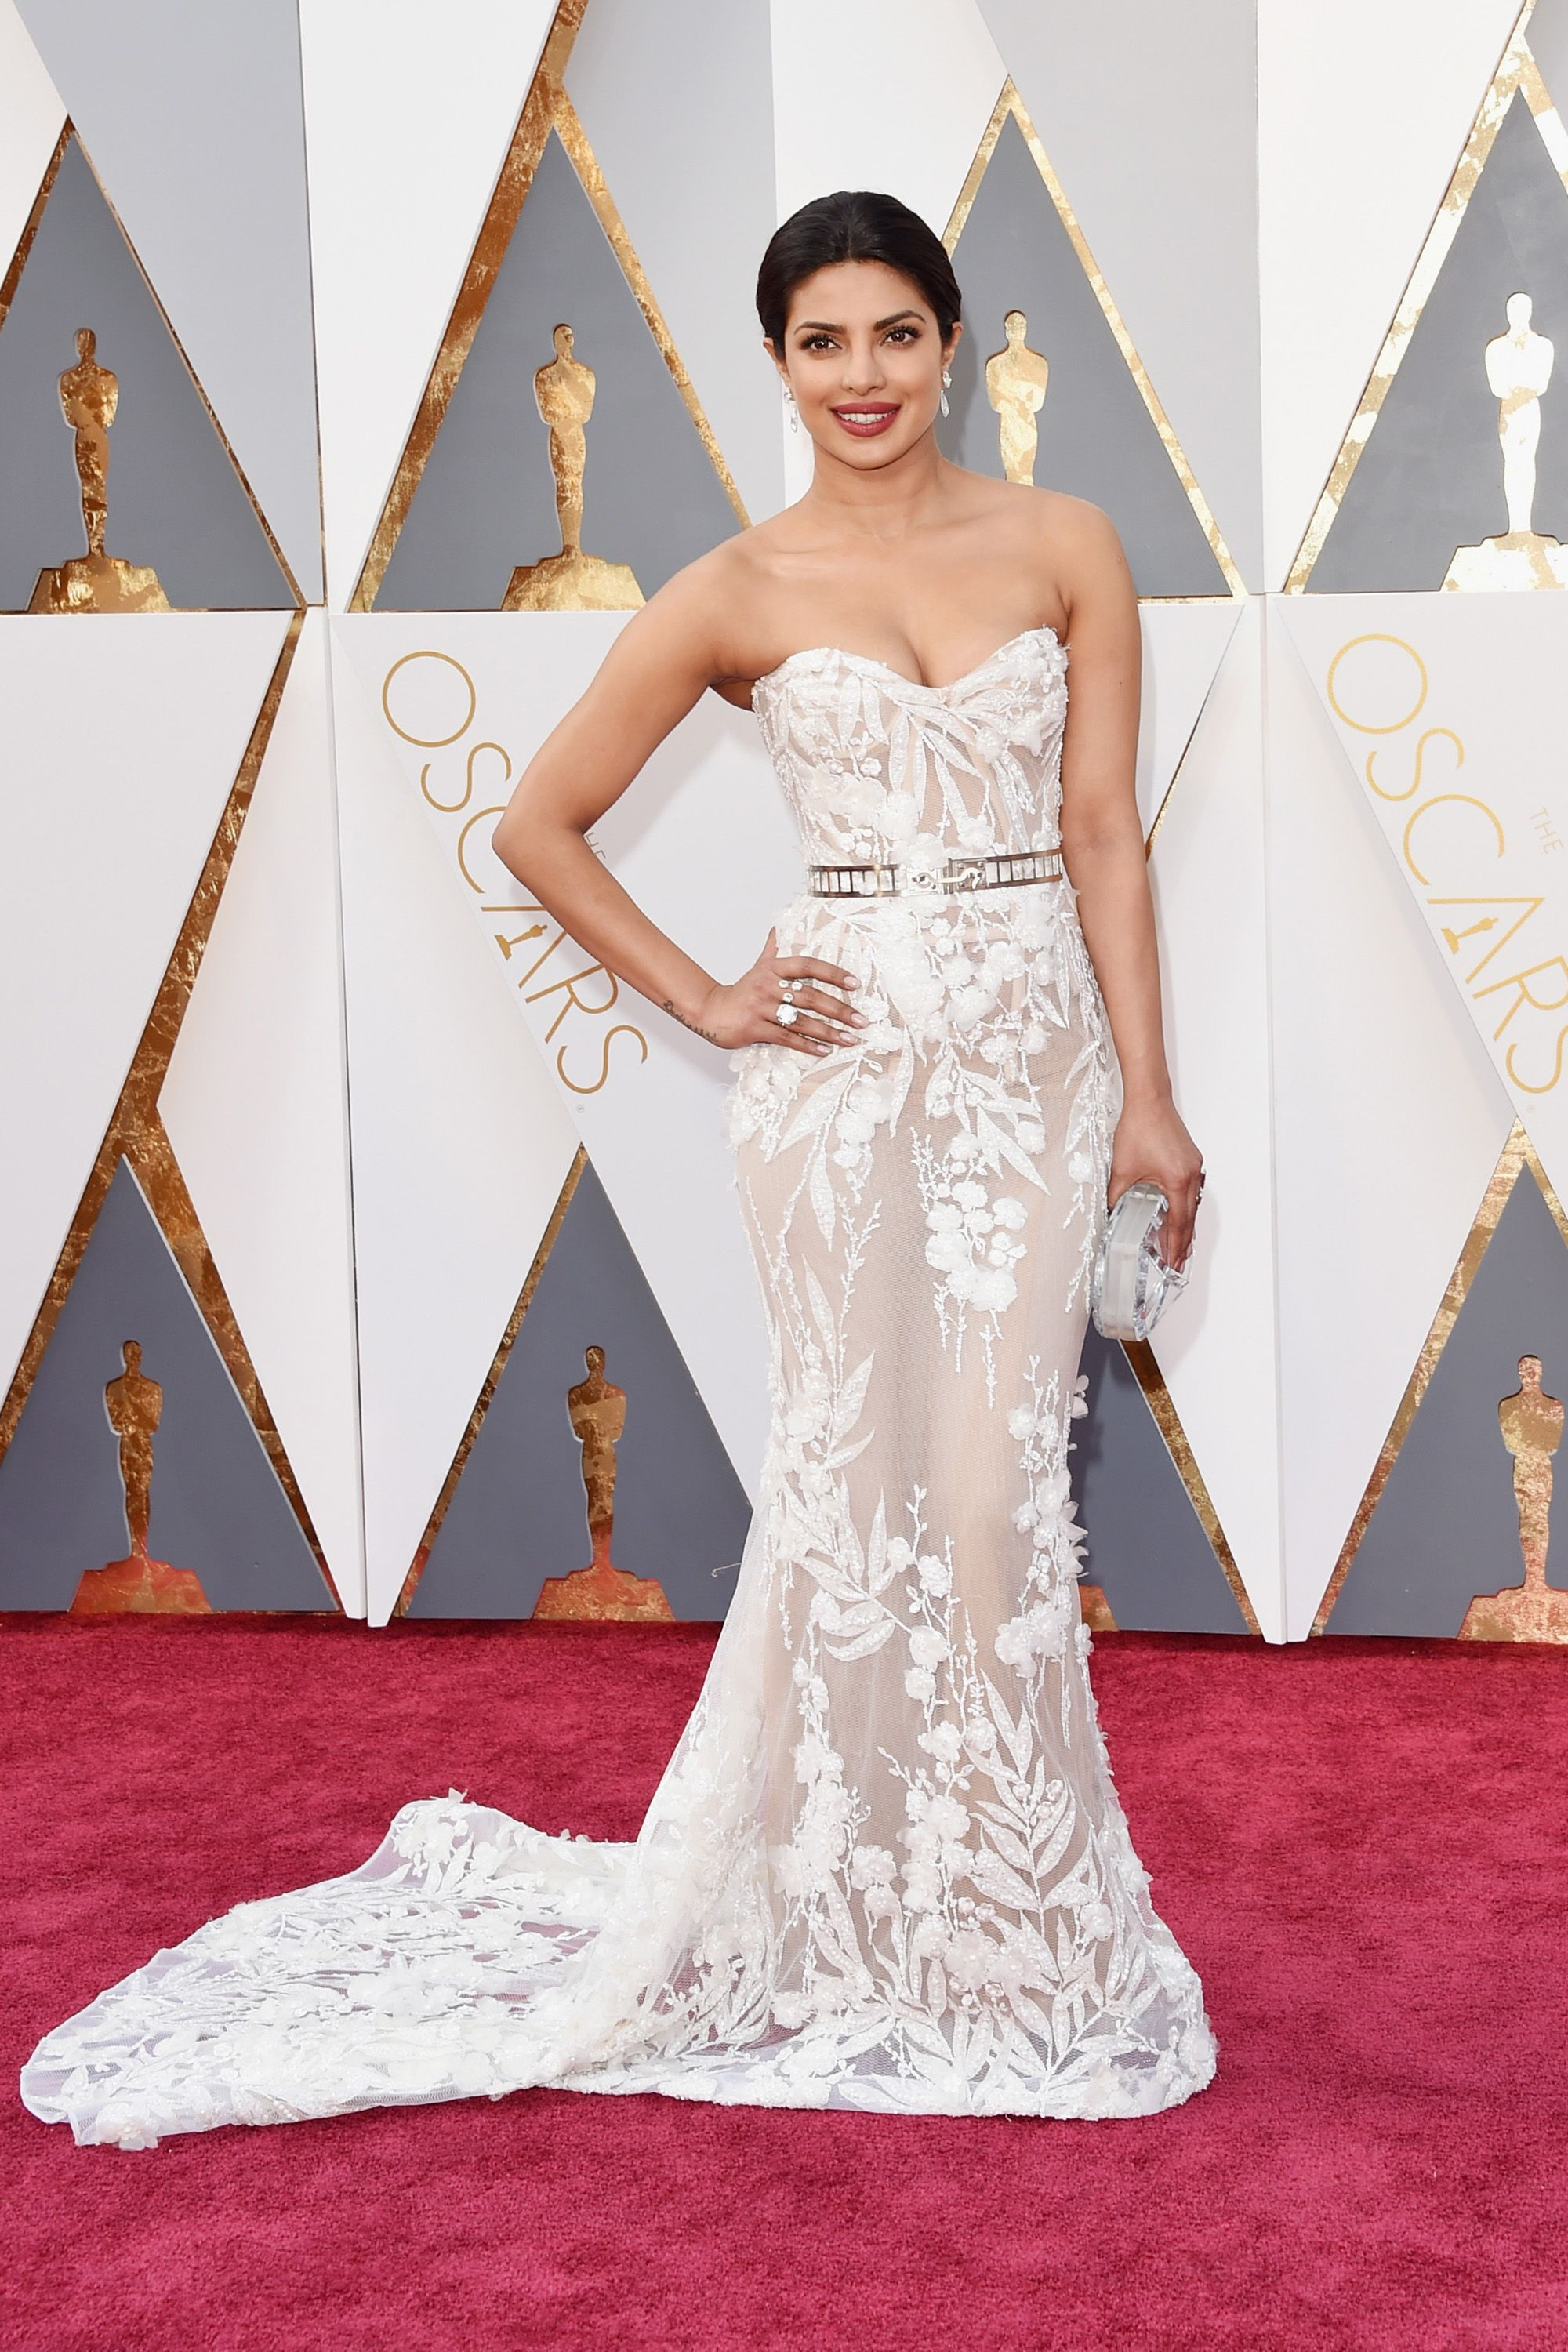 32 Sexiest Oscar Dresses of All Time - Sexy Gown Looks at Academy Awards 4cae80e81